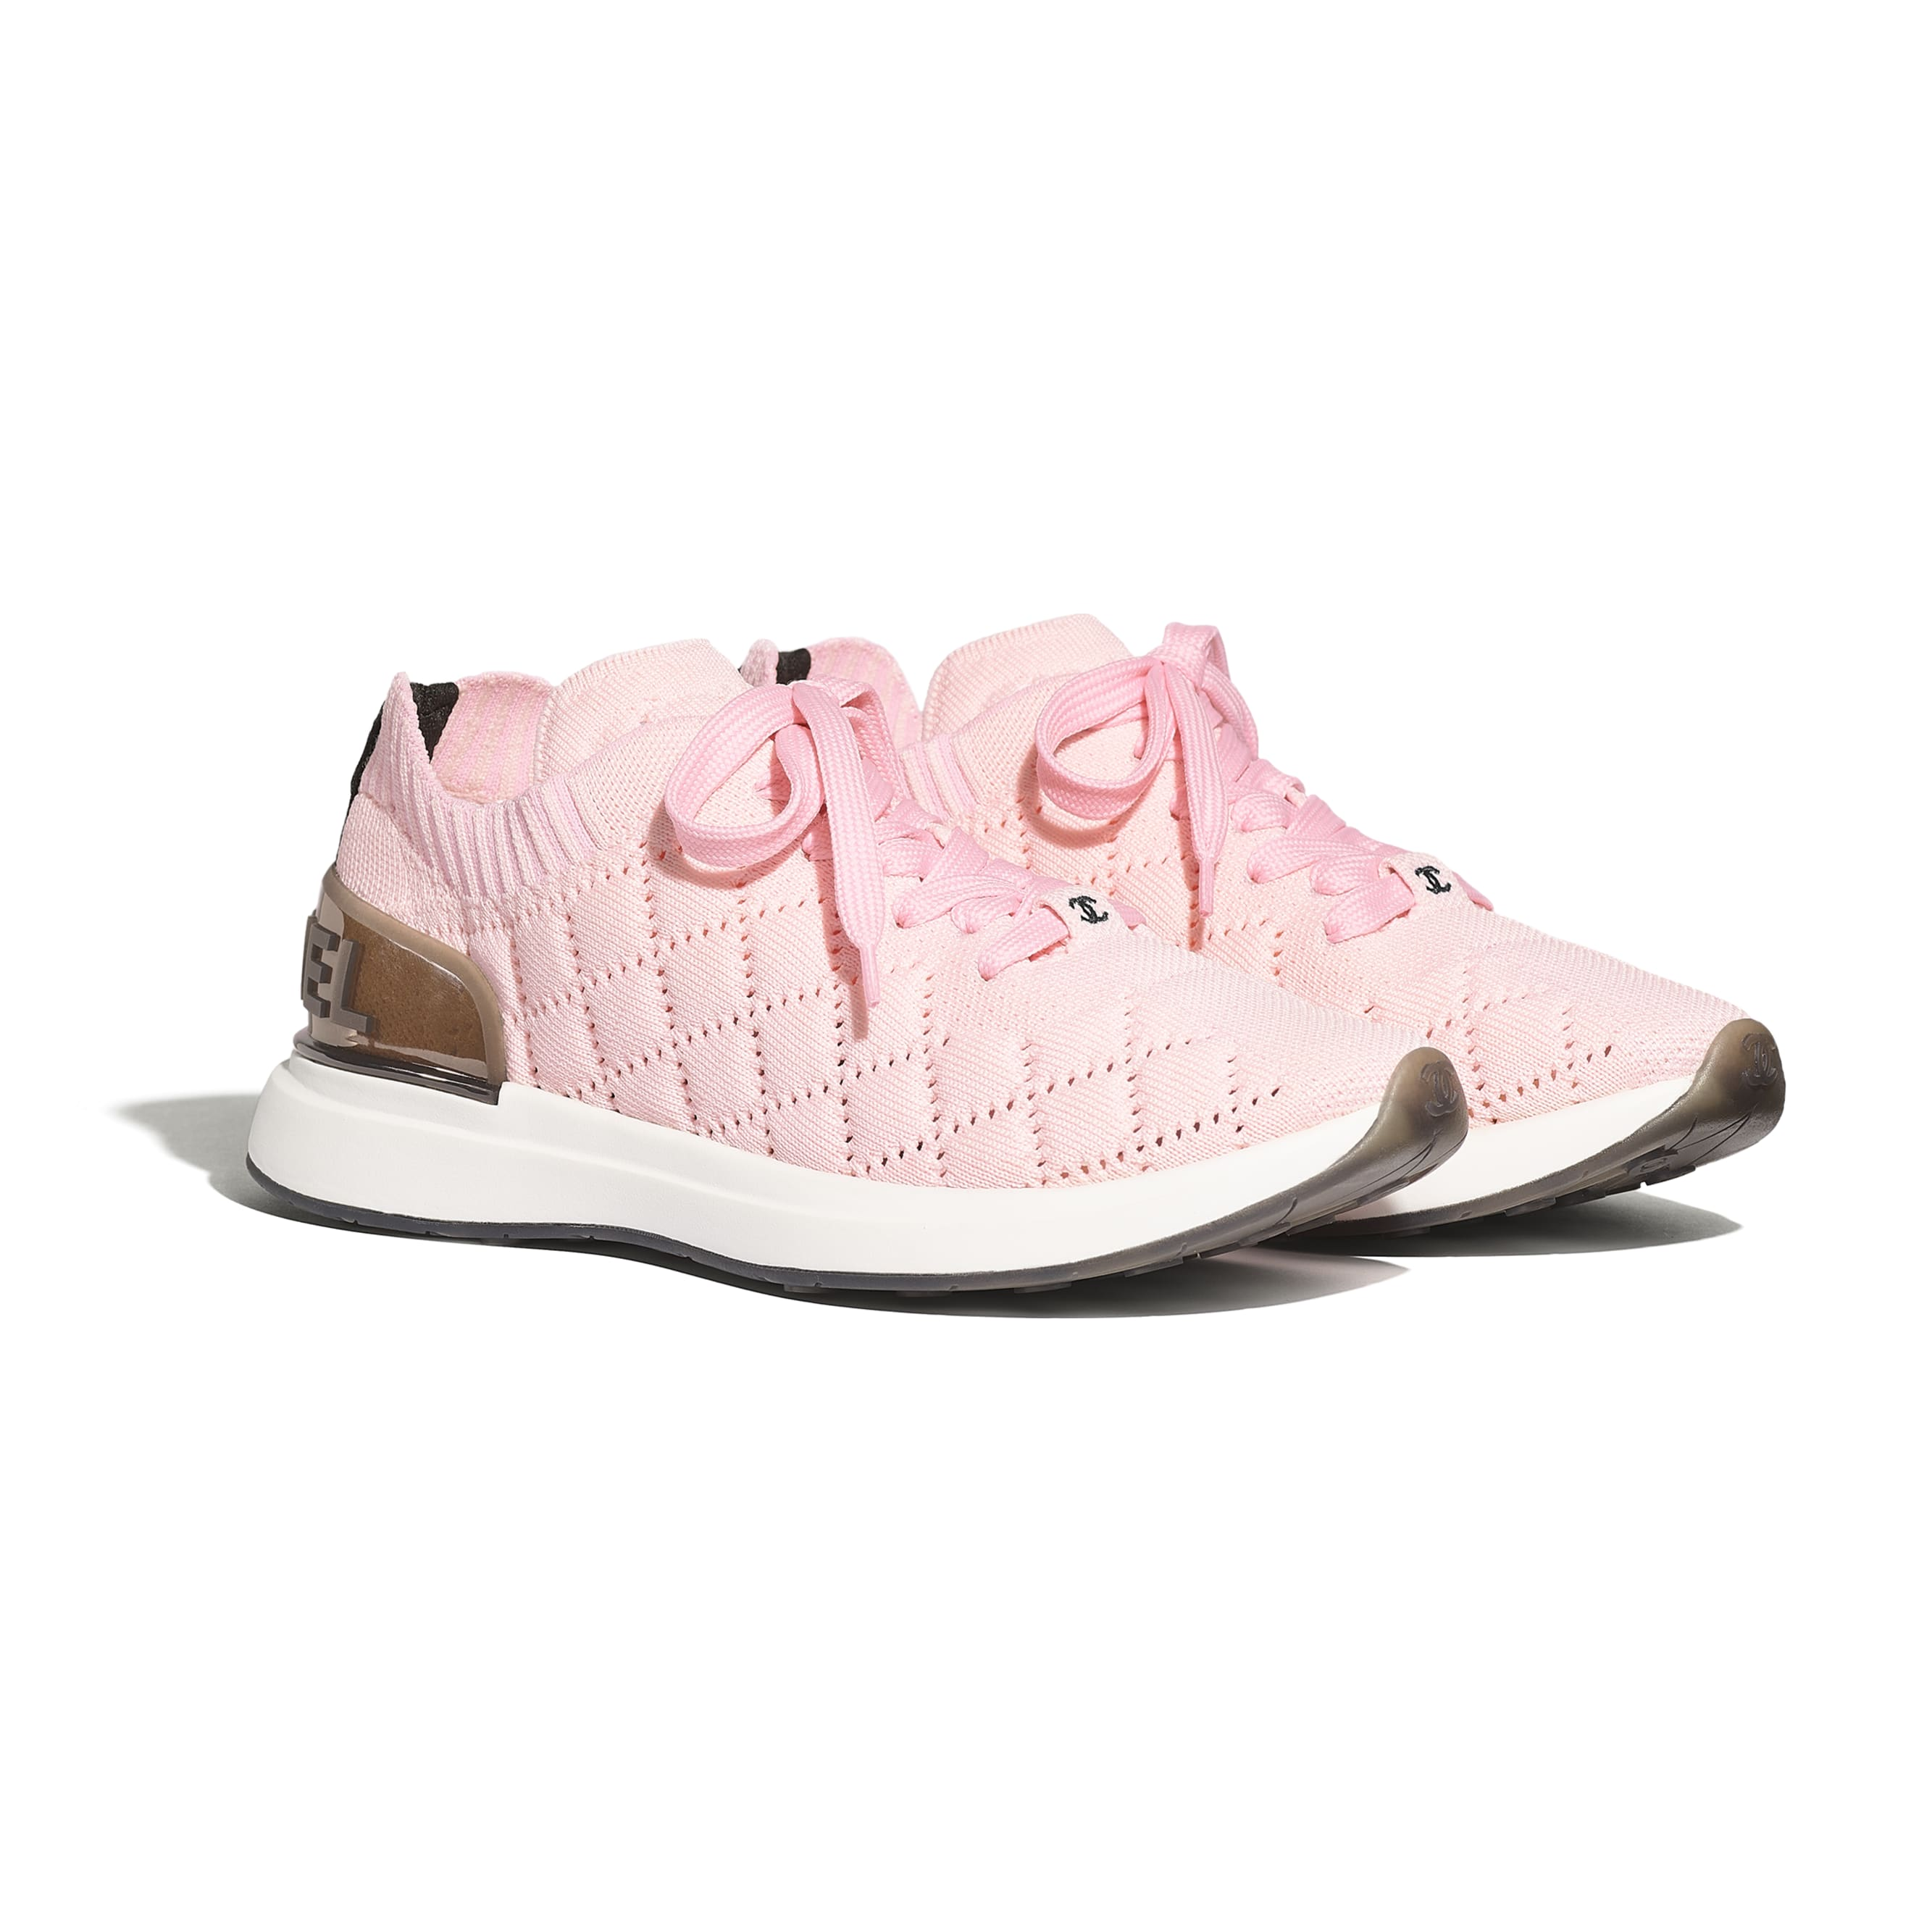 Trainers - Pink - Mixed Fibres - CHANEL - Alternative view - see standard sized version